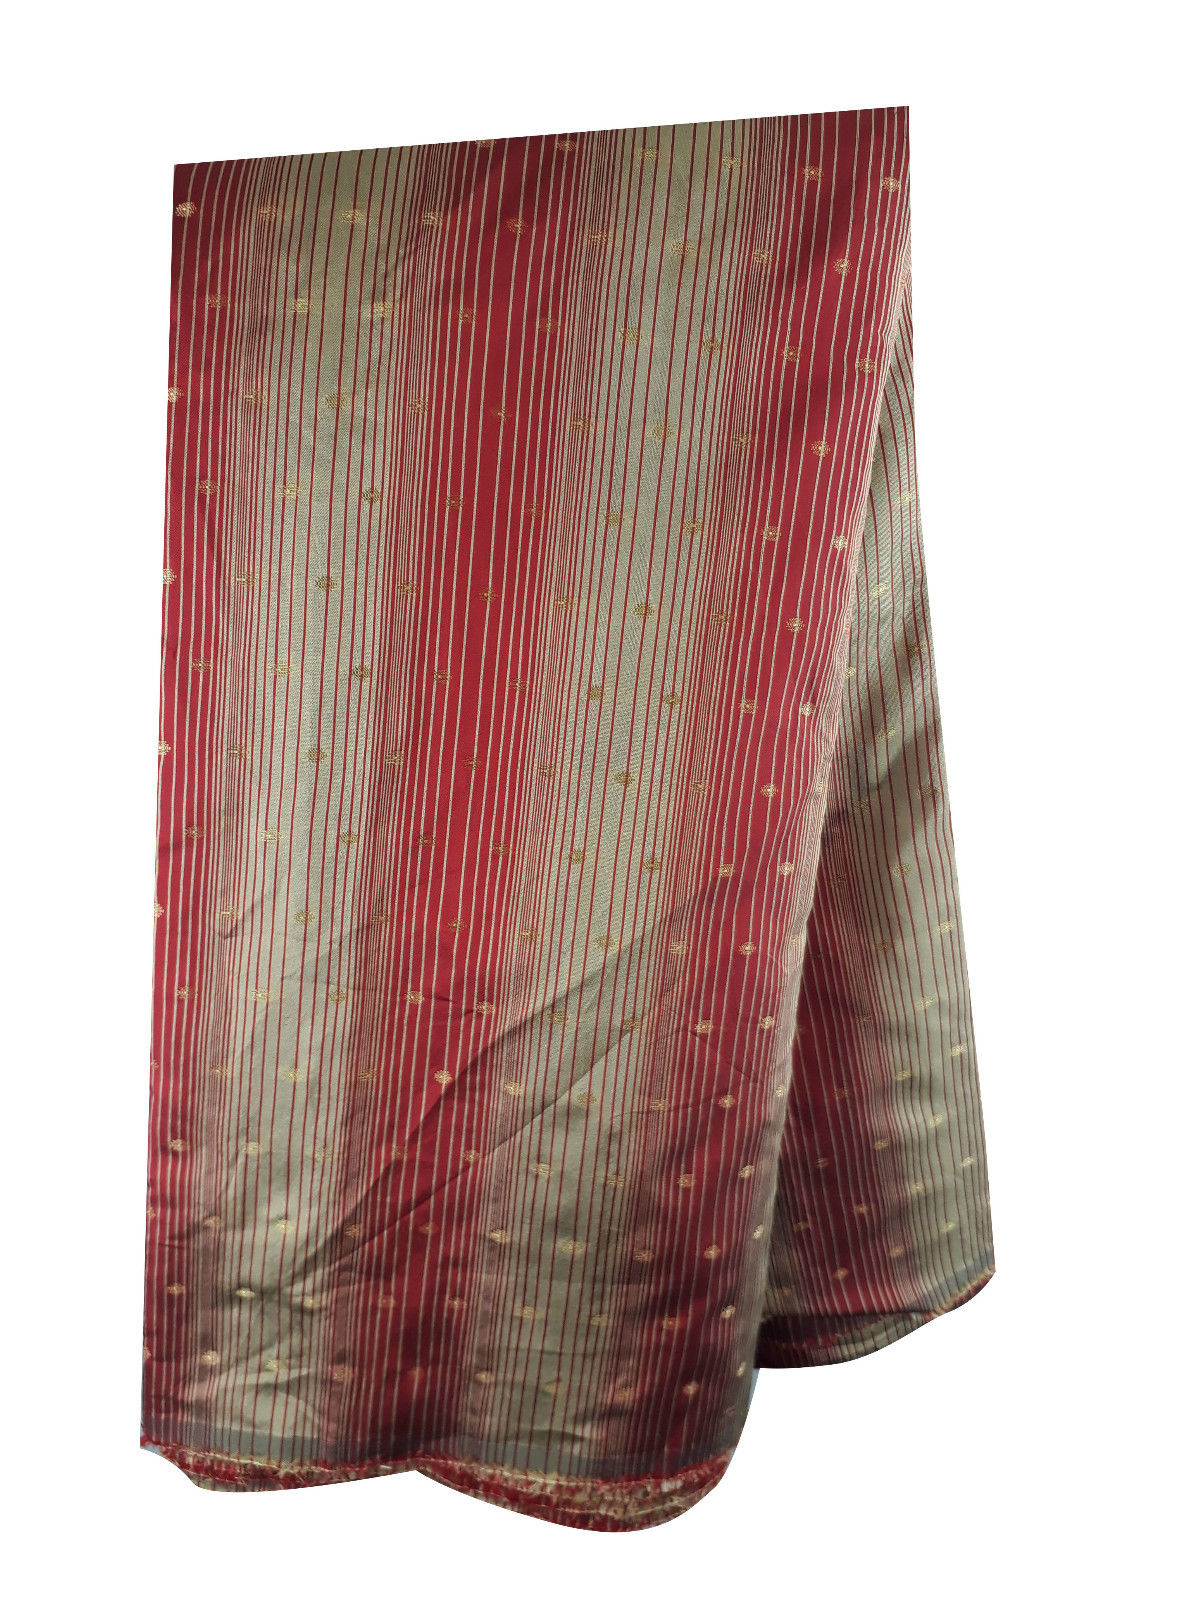 running fabrics online india fabric online india Embroidered Polyester Red, Gold 46 inches Wide 1677